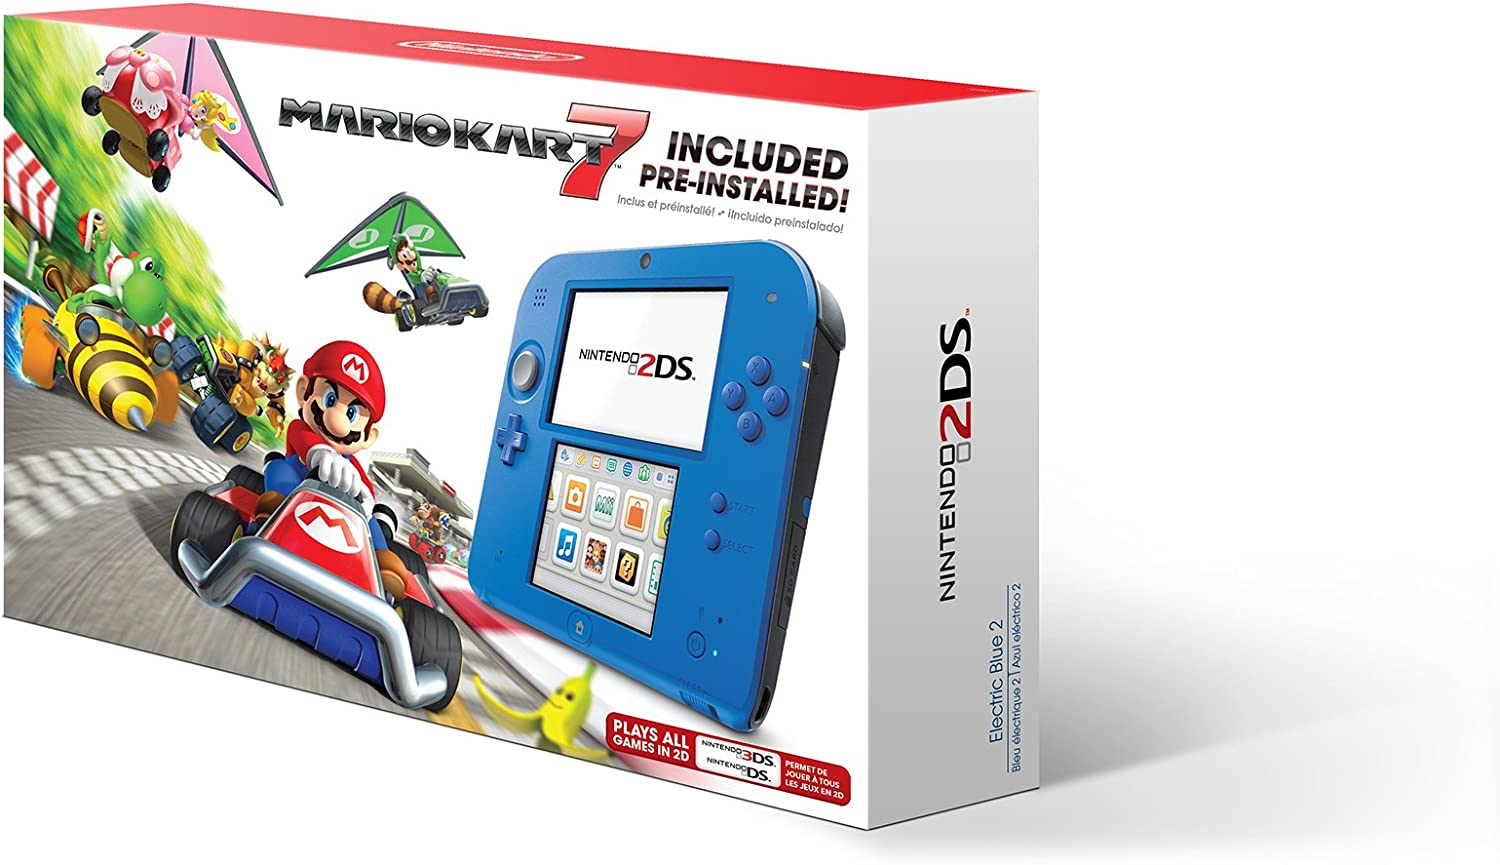 Amazon.com: Nintendo 2DS - Electric Blue with Mario Kart 7: Video Games